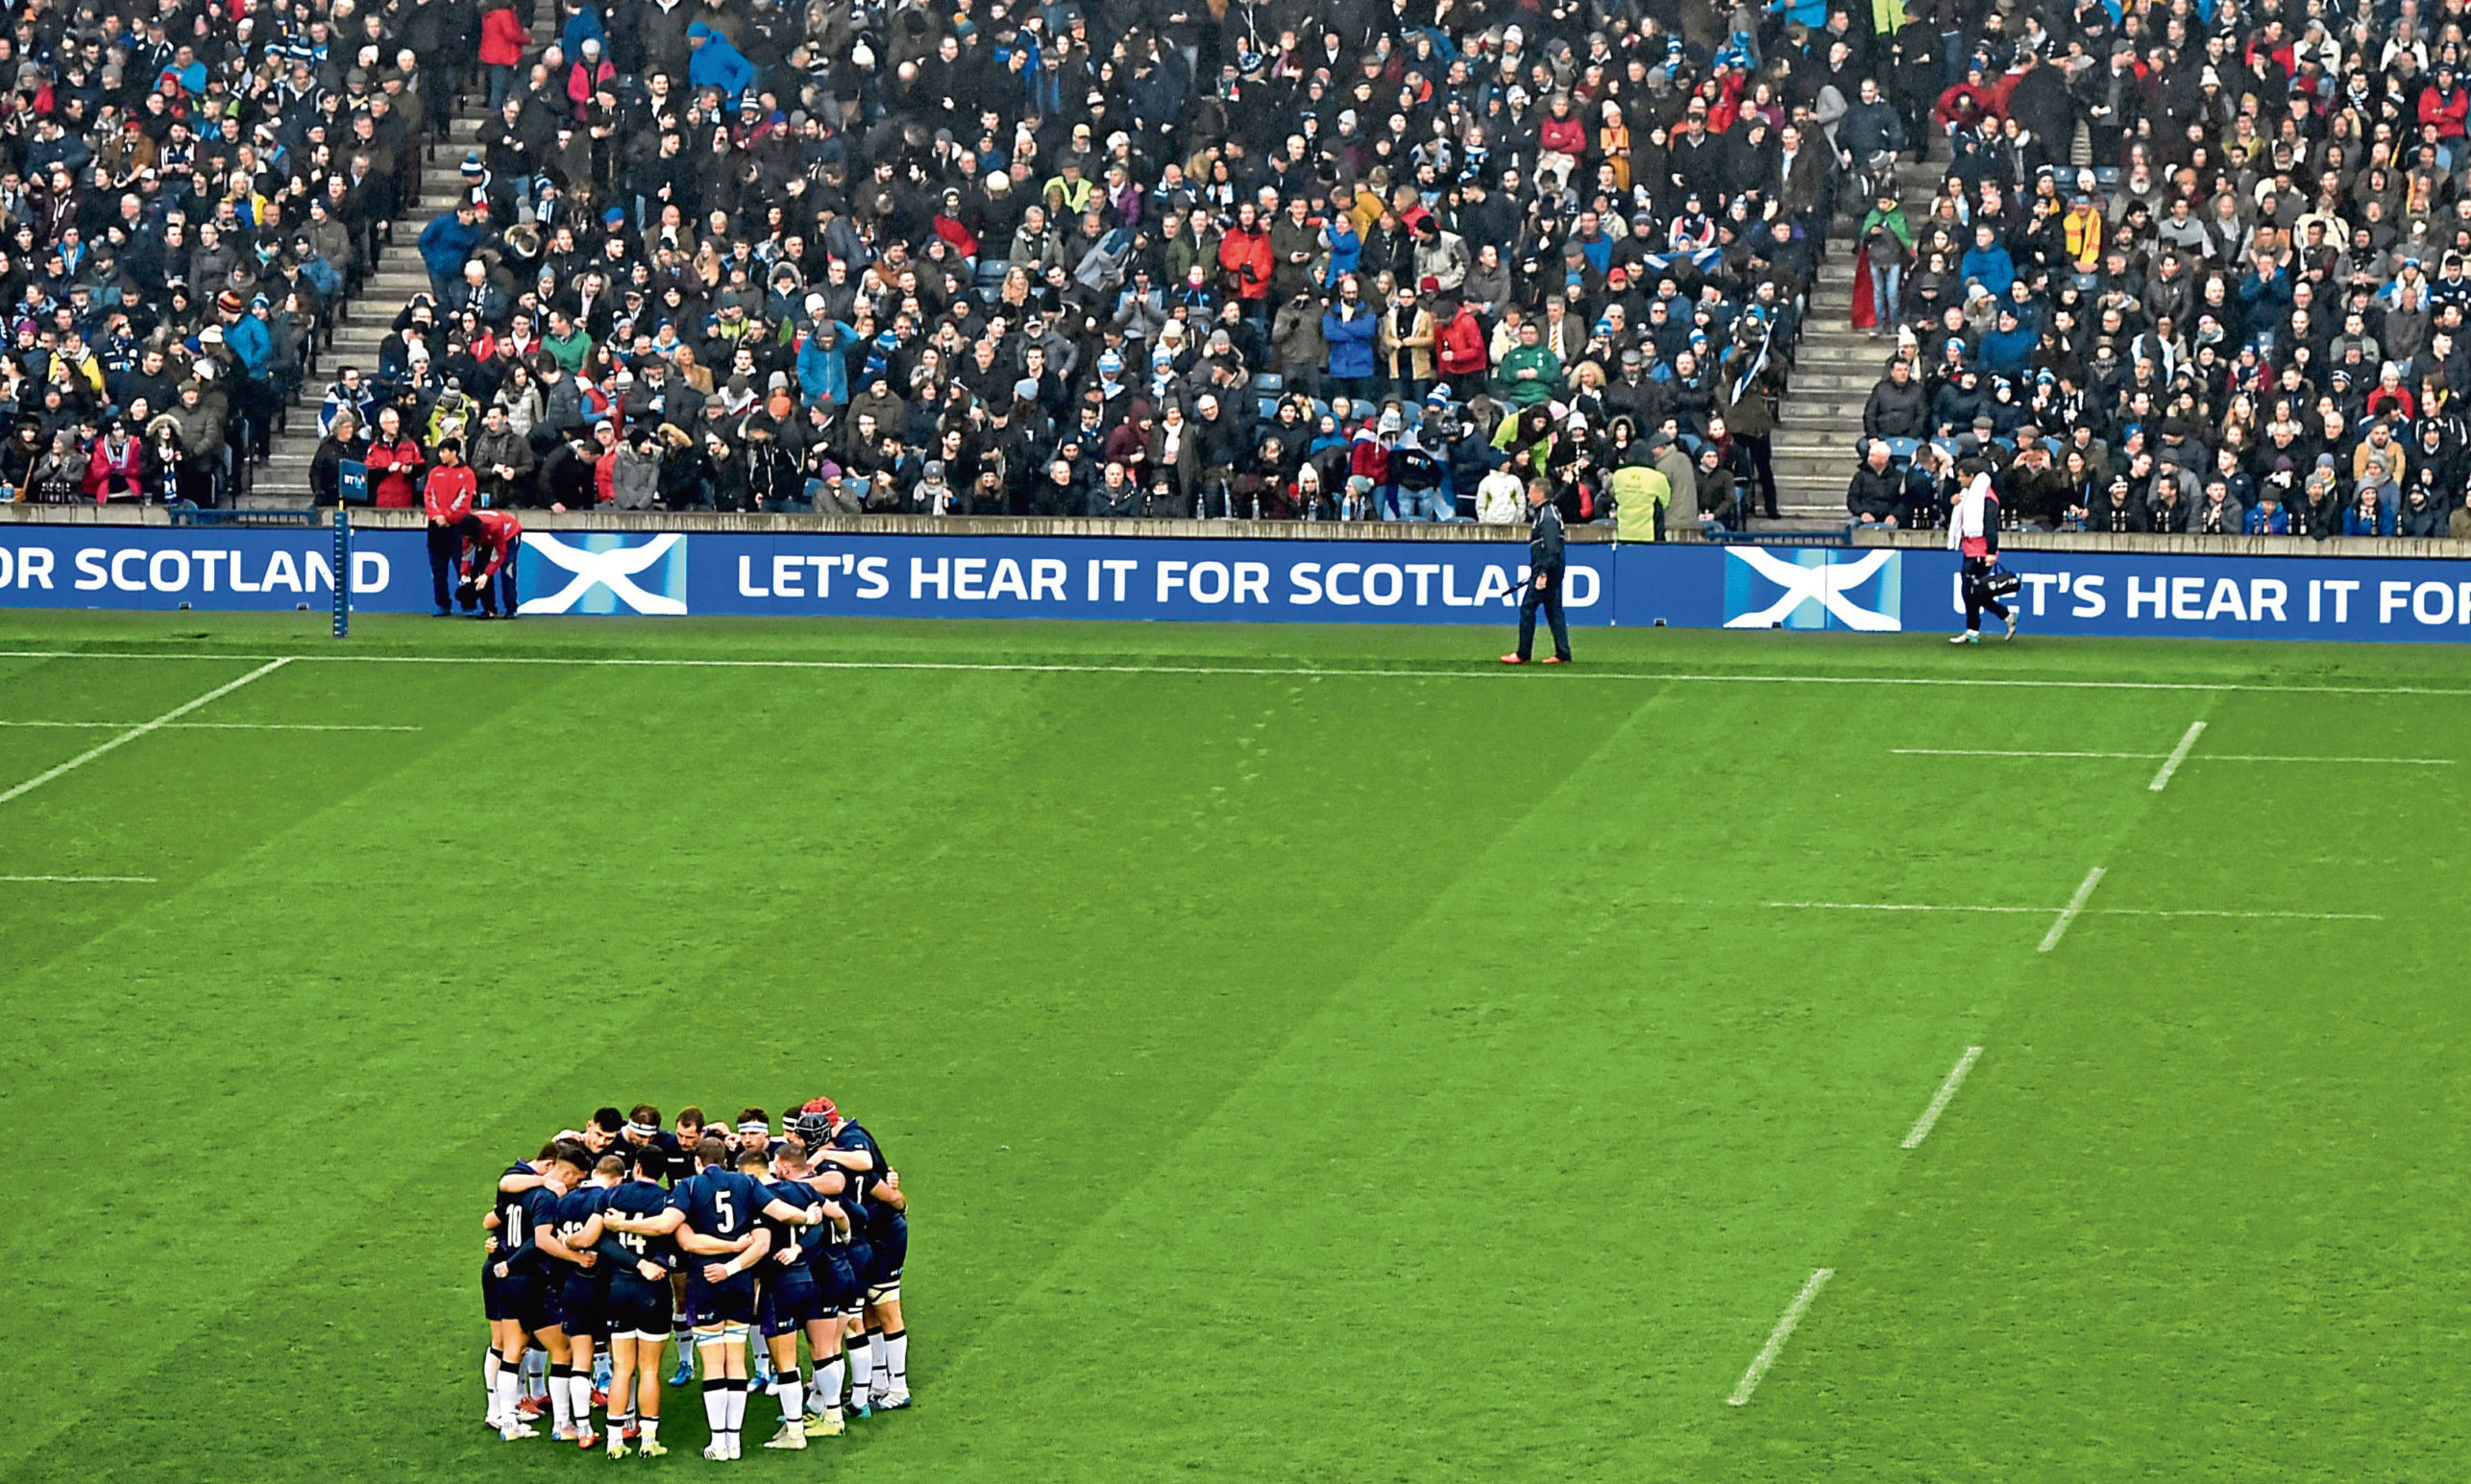 Scotland at Murrayfield.